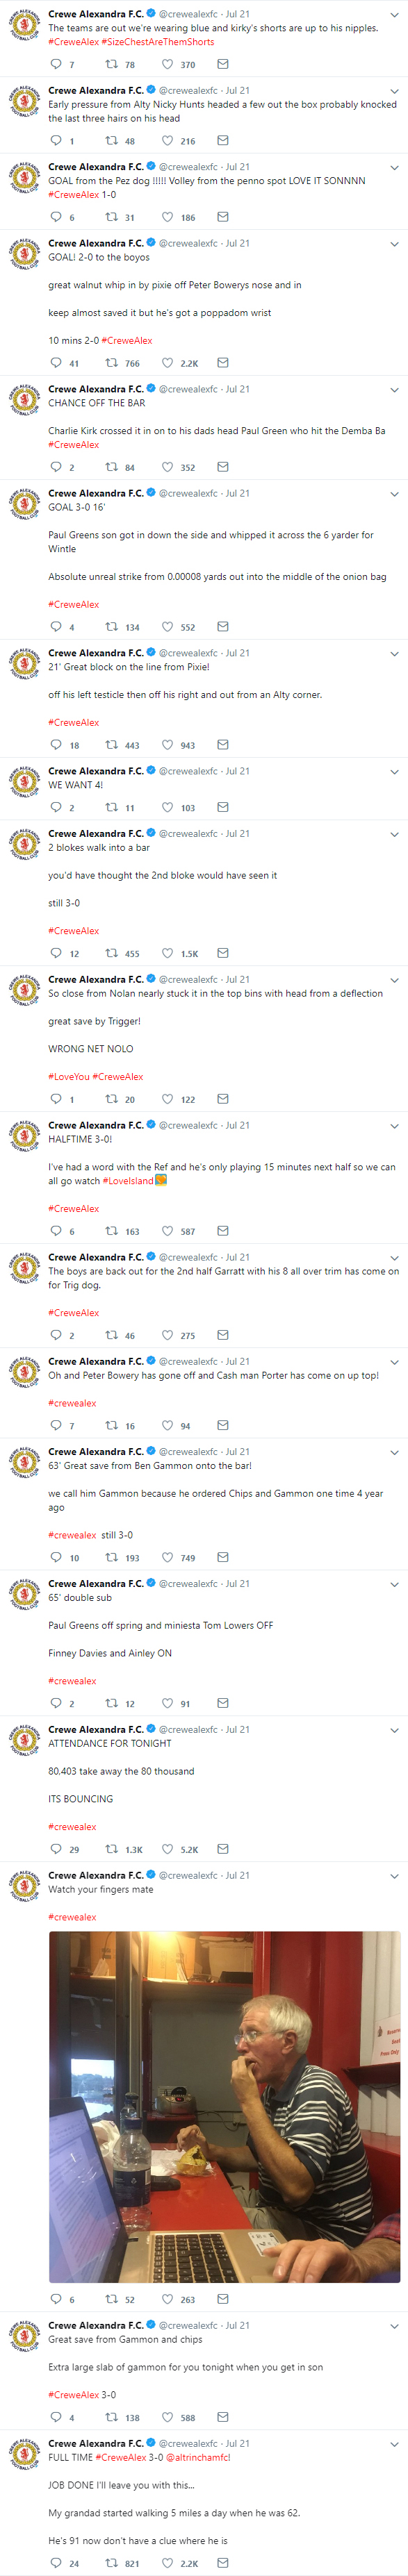 Crewe Alexandra player George Ray tweets some absolutely brilliant content